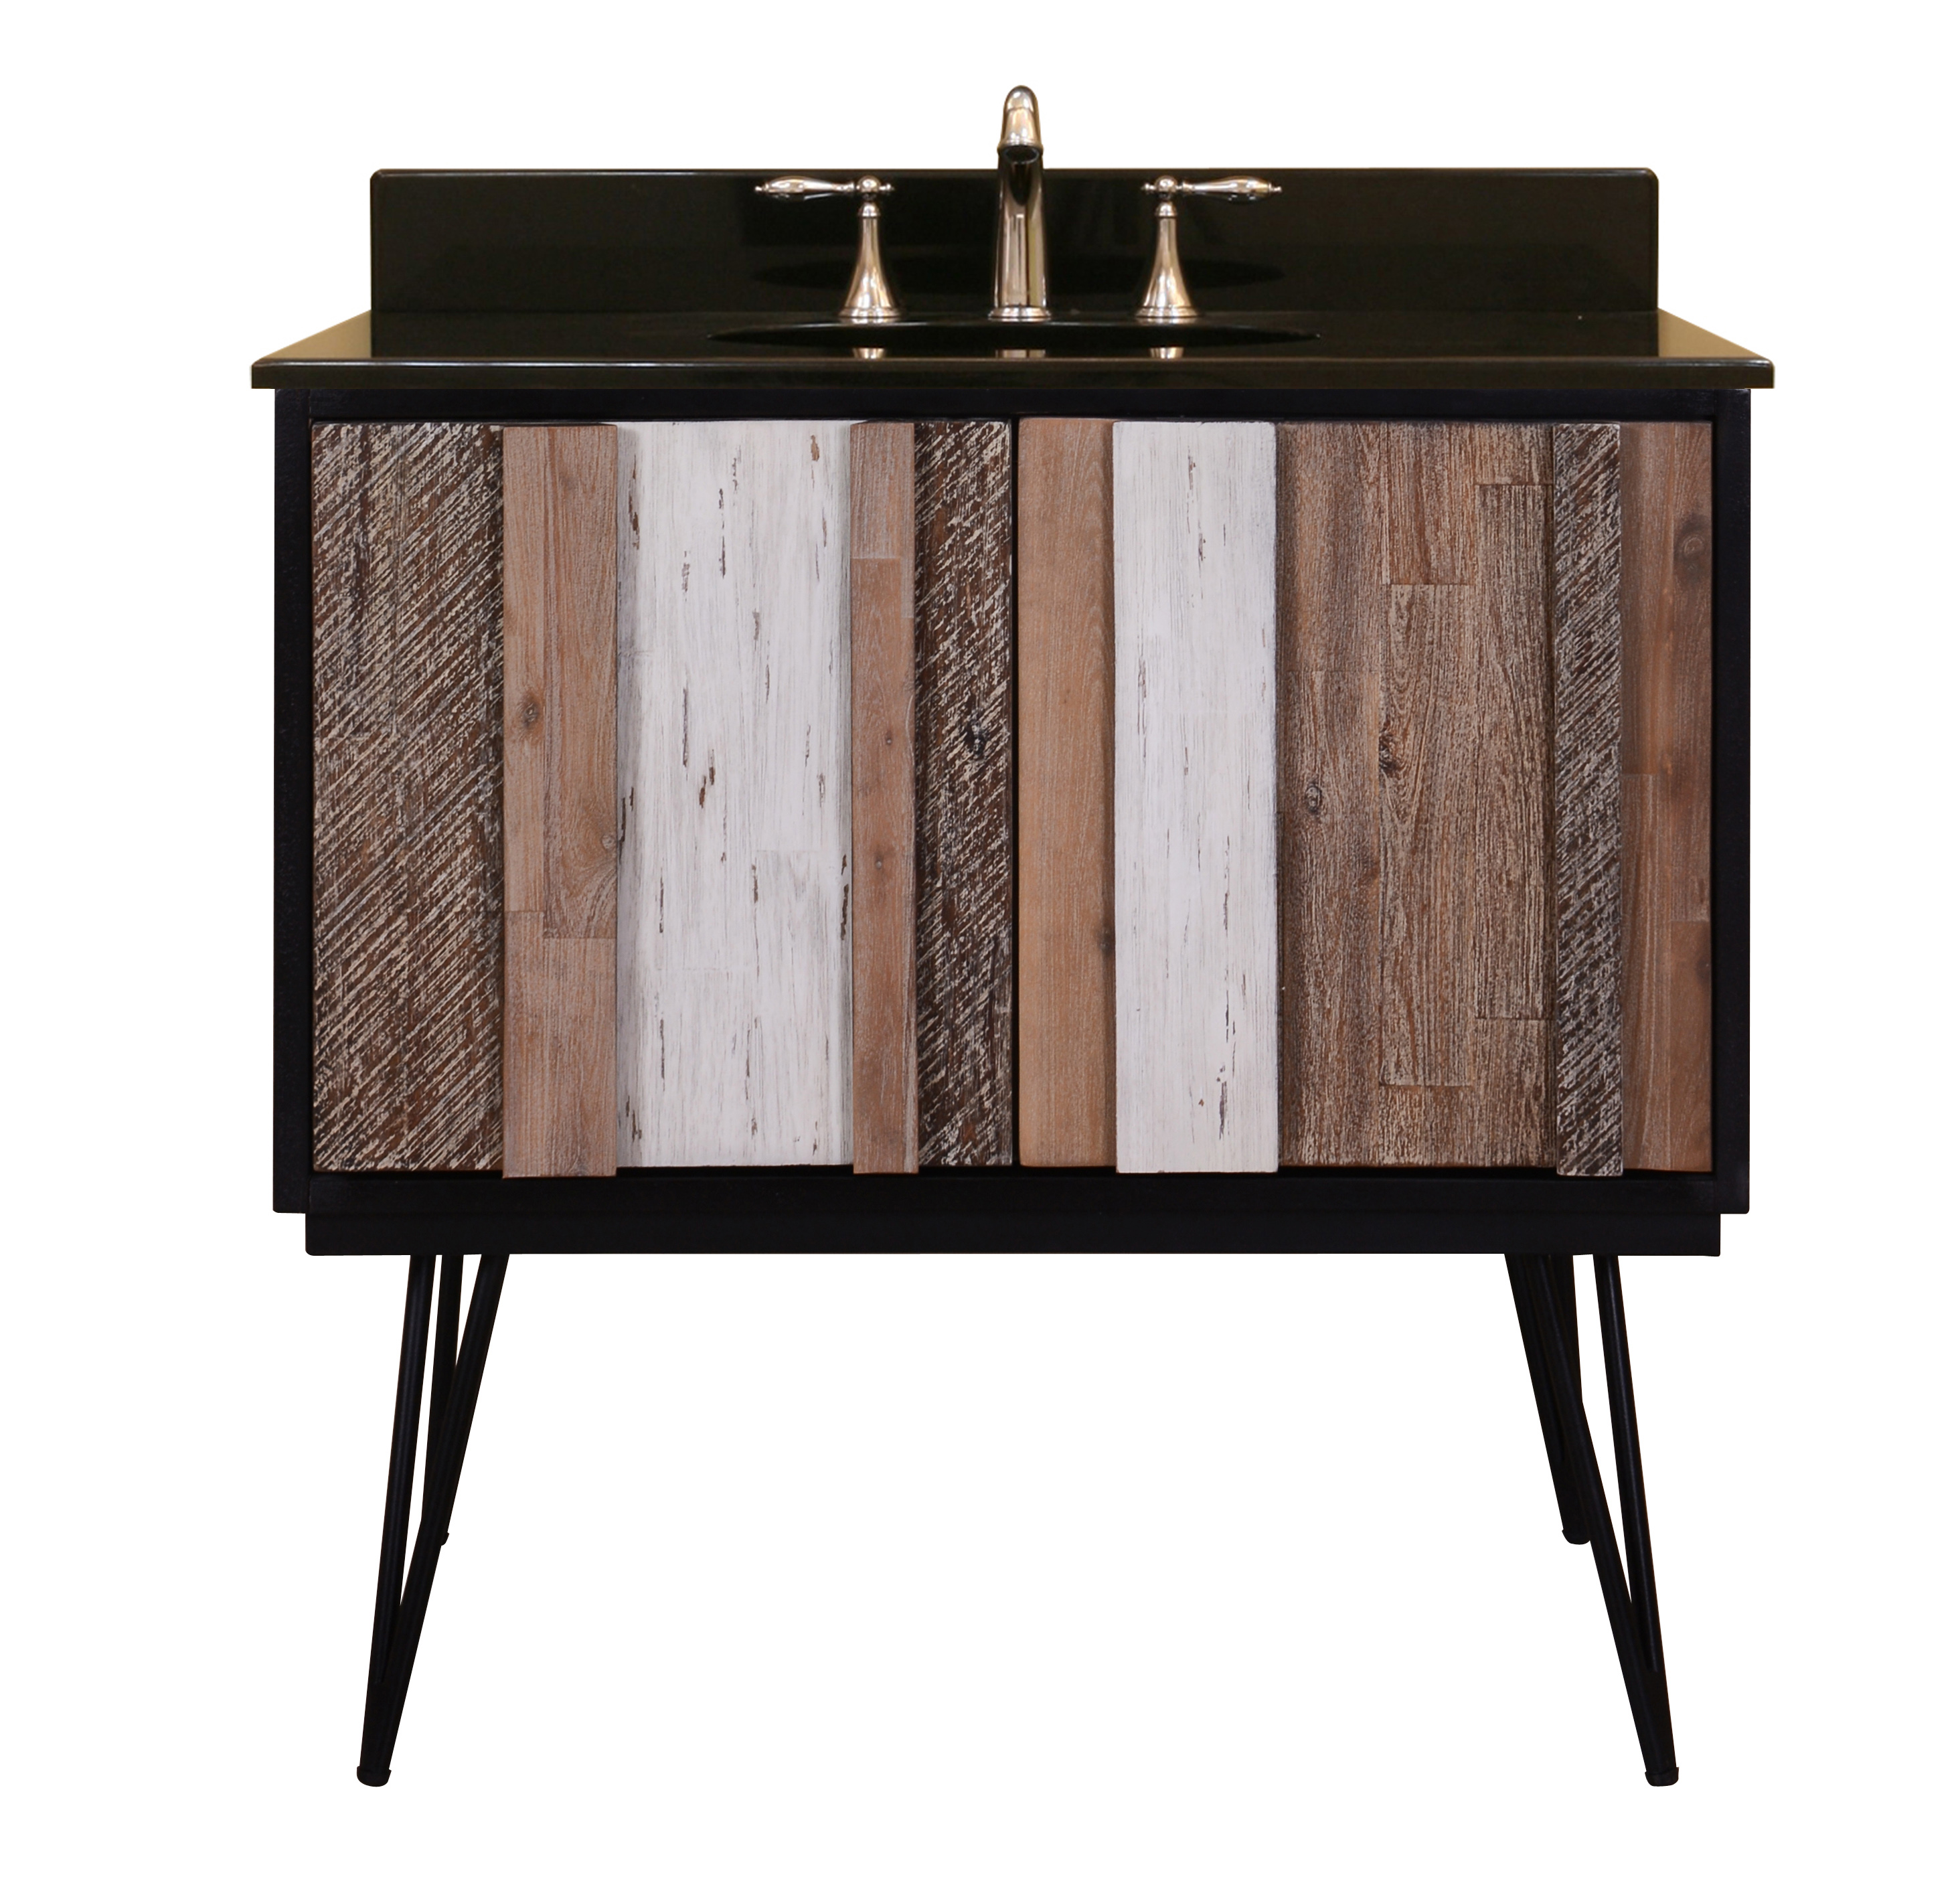 "Verticali 36"" Bathroom Vanity Base, Rustic Variegated Finish"